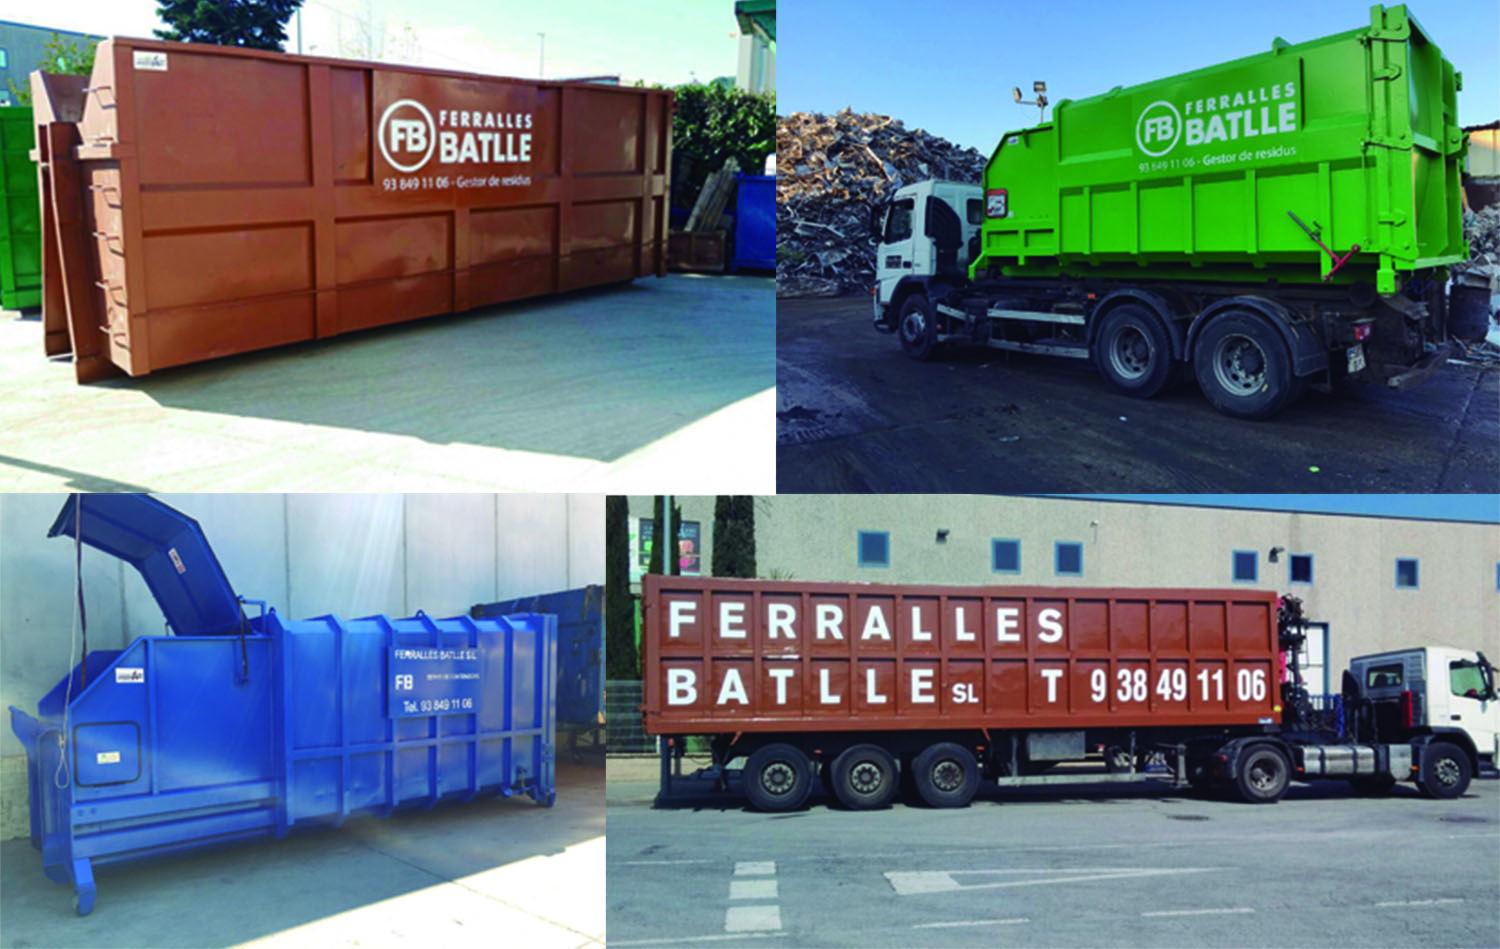 Containers waste management recycling Ferralles Batlle